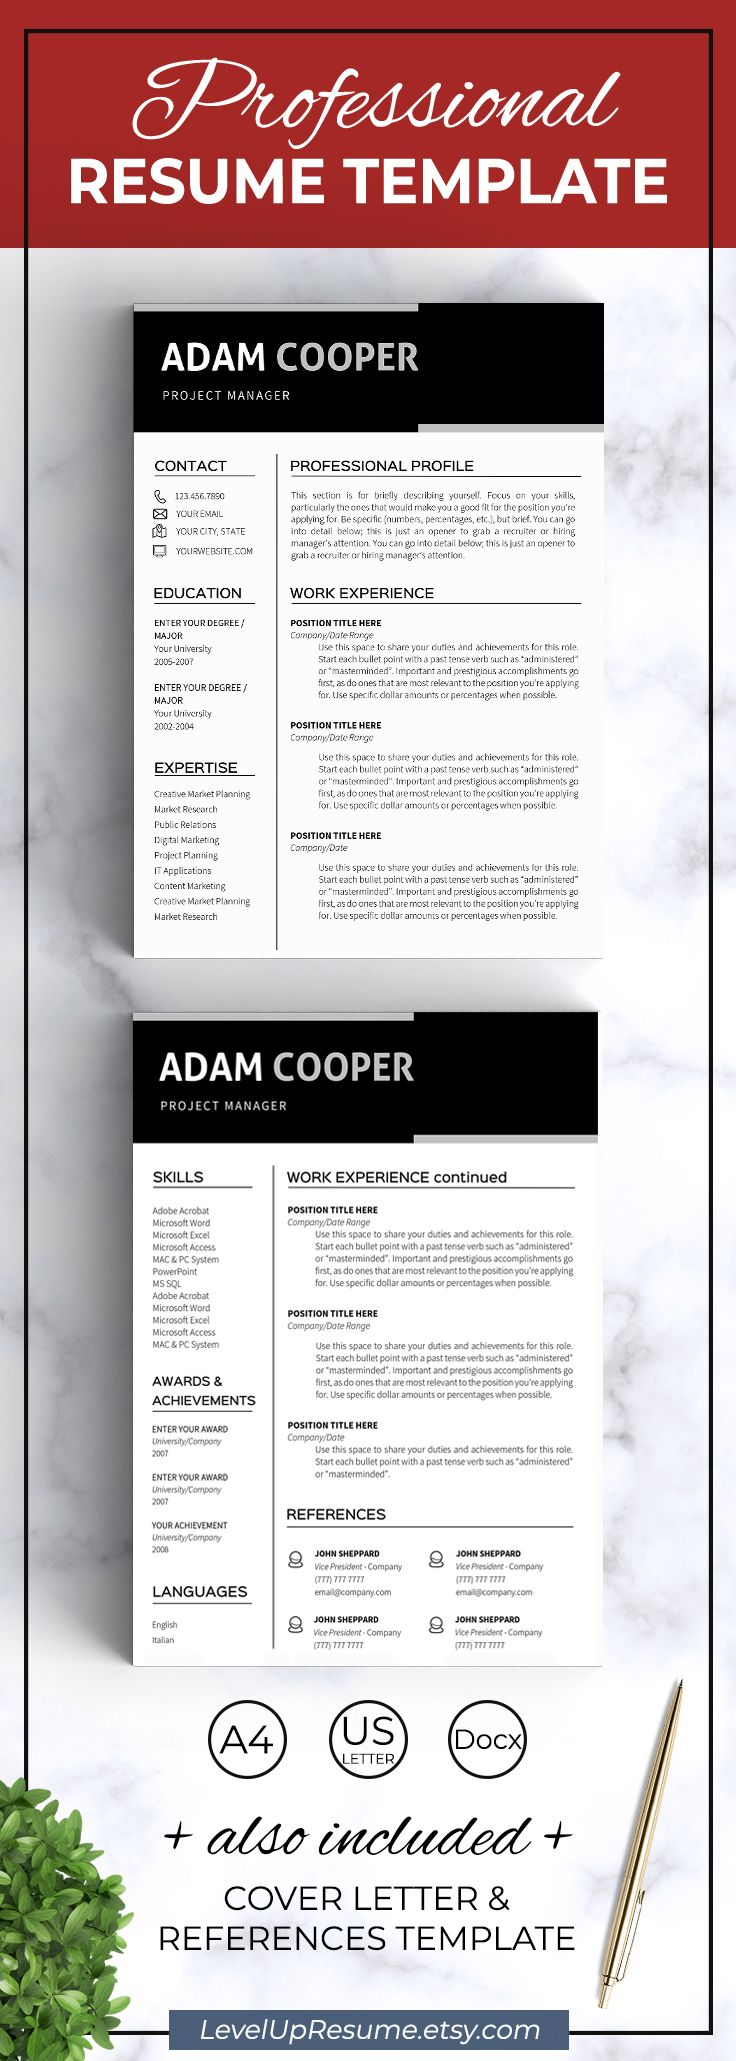 Modern resume template. Professional resume design. Career advice. Job search. Get hired! Click on the link or save the pin to your board >>>>> #career #career advice #job #jobsearch #resume #resumetemplate . Resume template instant download - Clean resume templates - Curriculum vitae